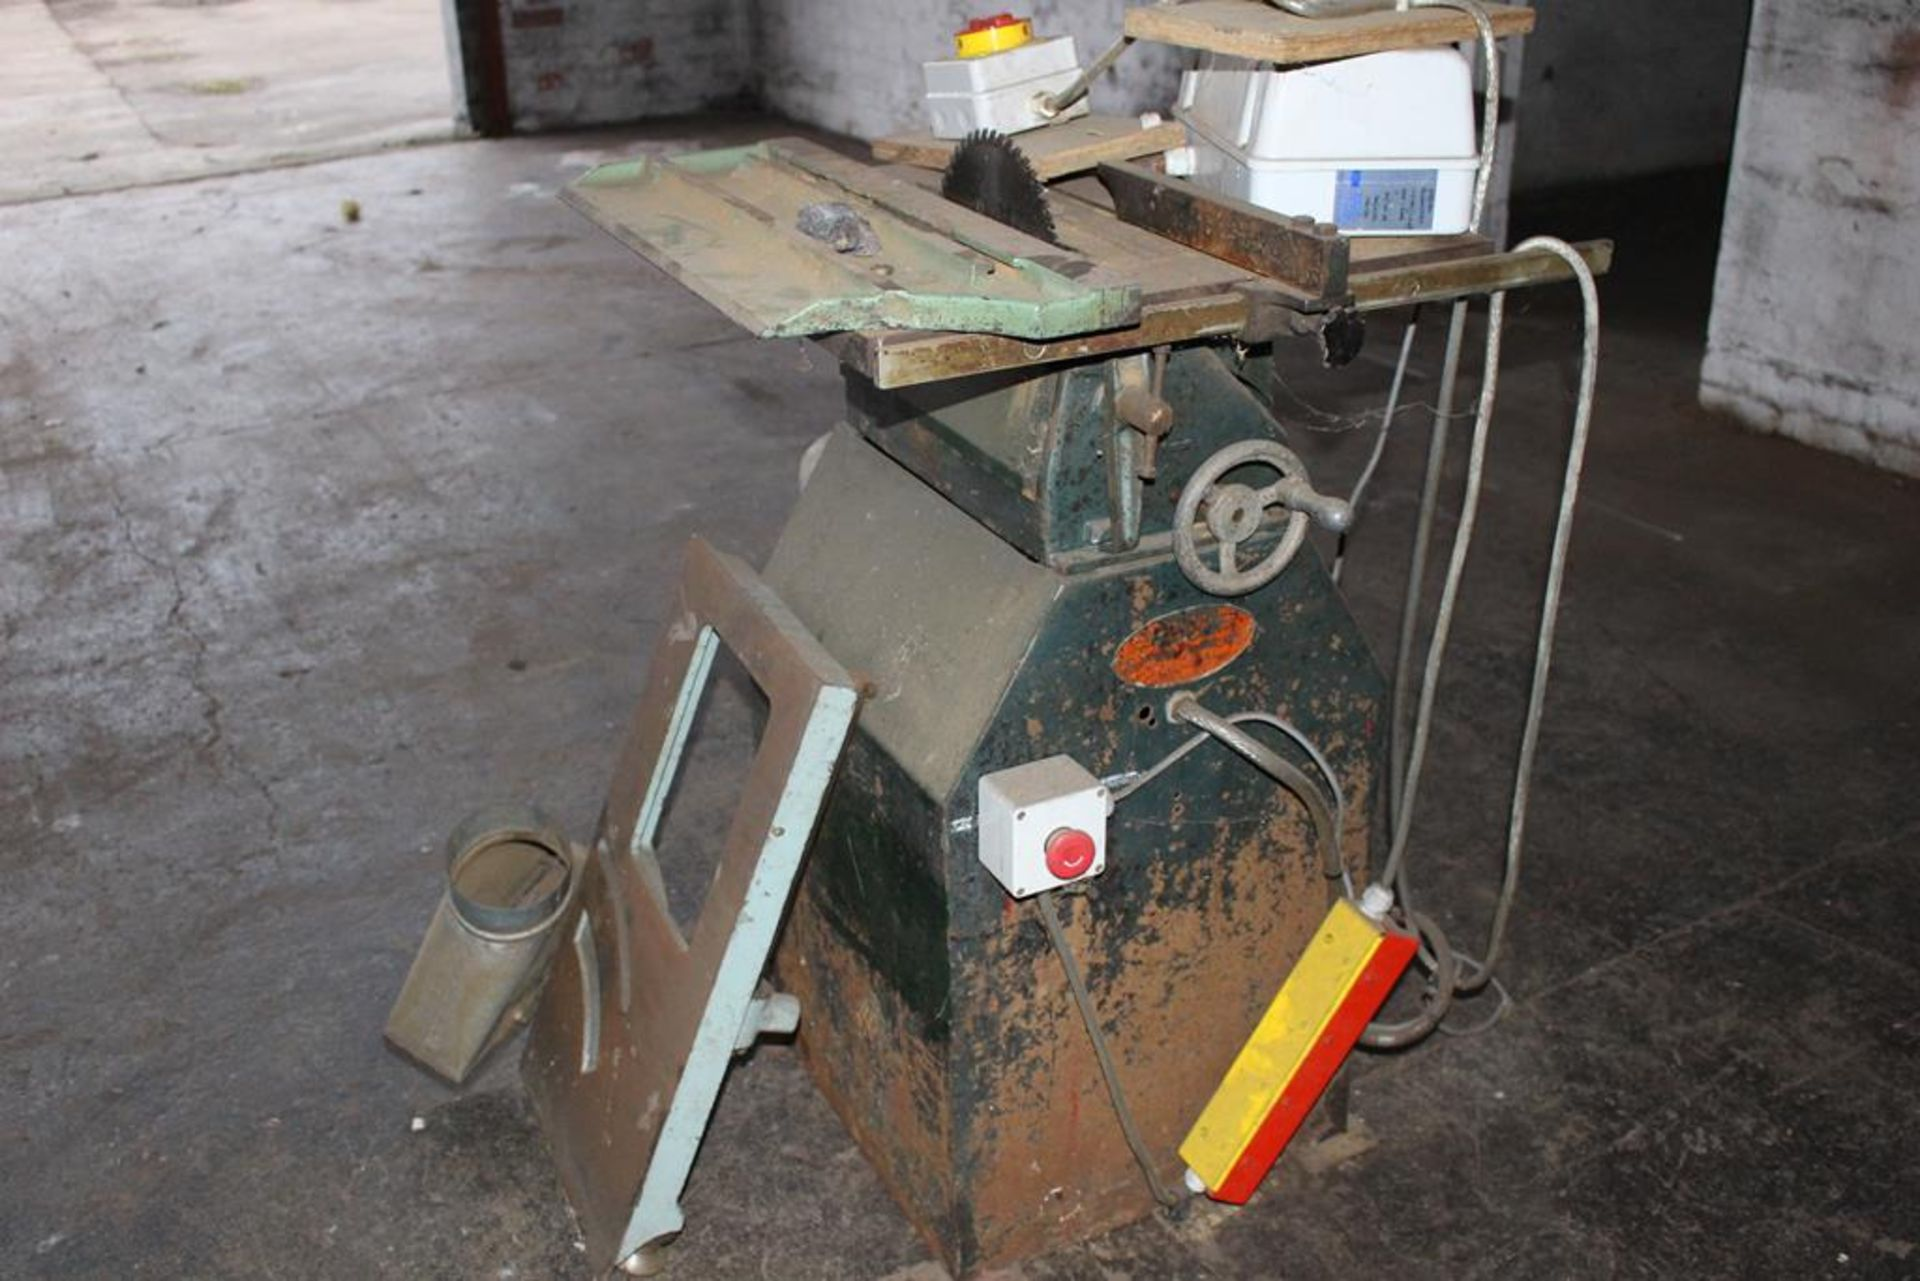 Lot 64 - * Tyzack Small Saw Bench A Tyzack Small Circular Saw Bench. Please note this lot is located at